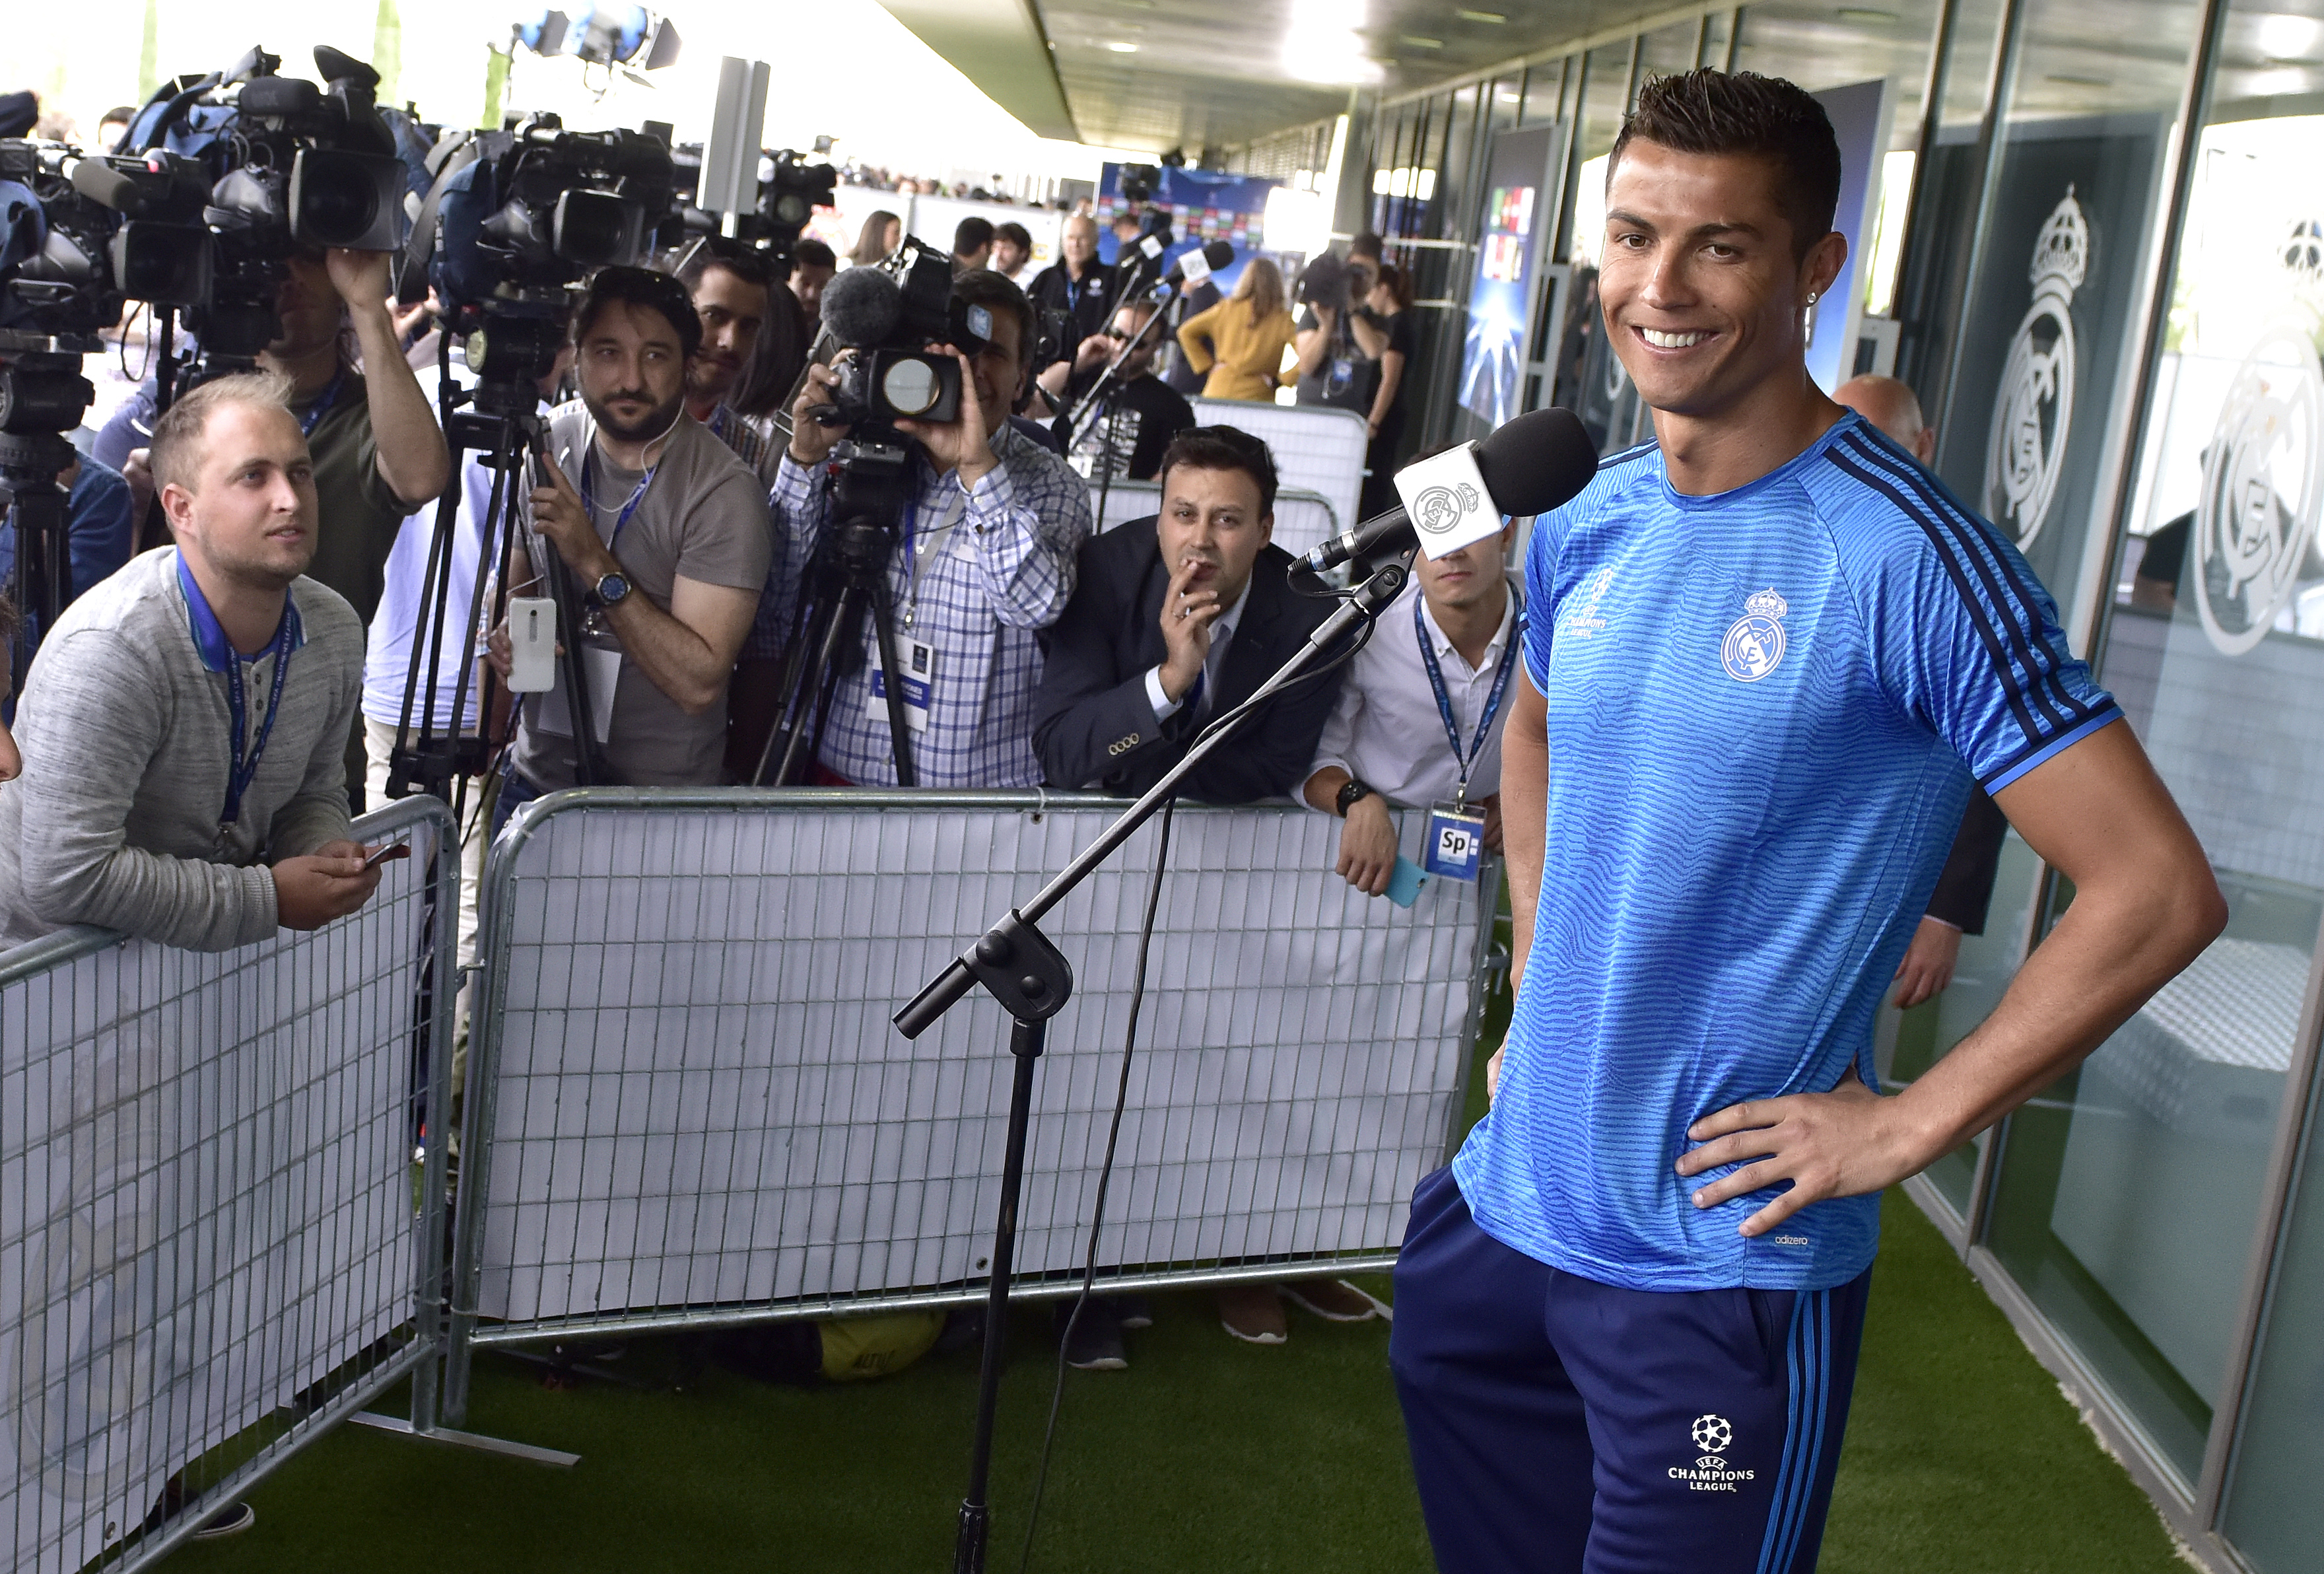 Real Madrid's Portuguese forward Cristiano Ronaldo smiles as he addresses journalists during the club's Open Media Day at Real Madrid sport city in Madrid on May 24, 2016. / AFP PHOTO / GERARD JULIEN